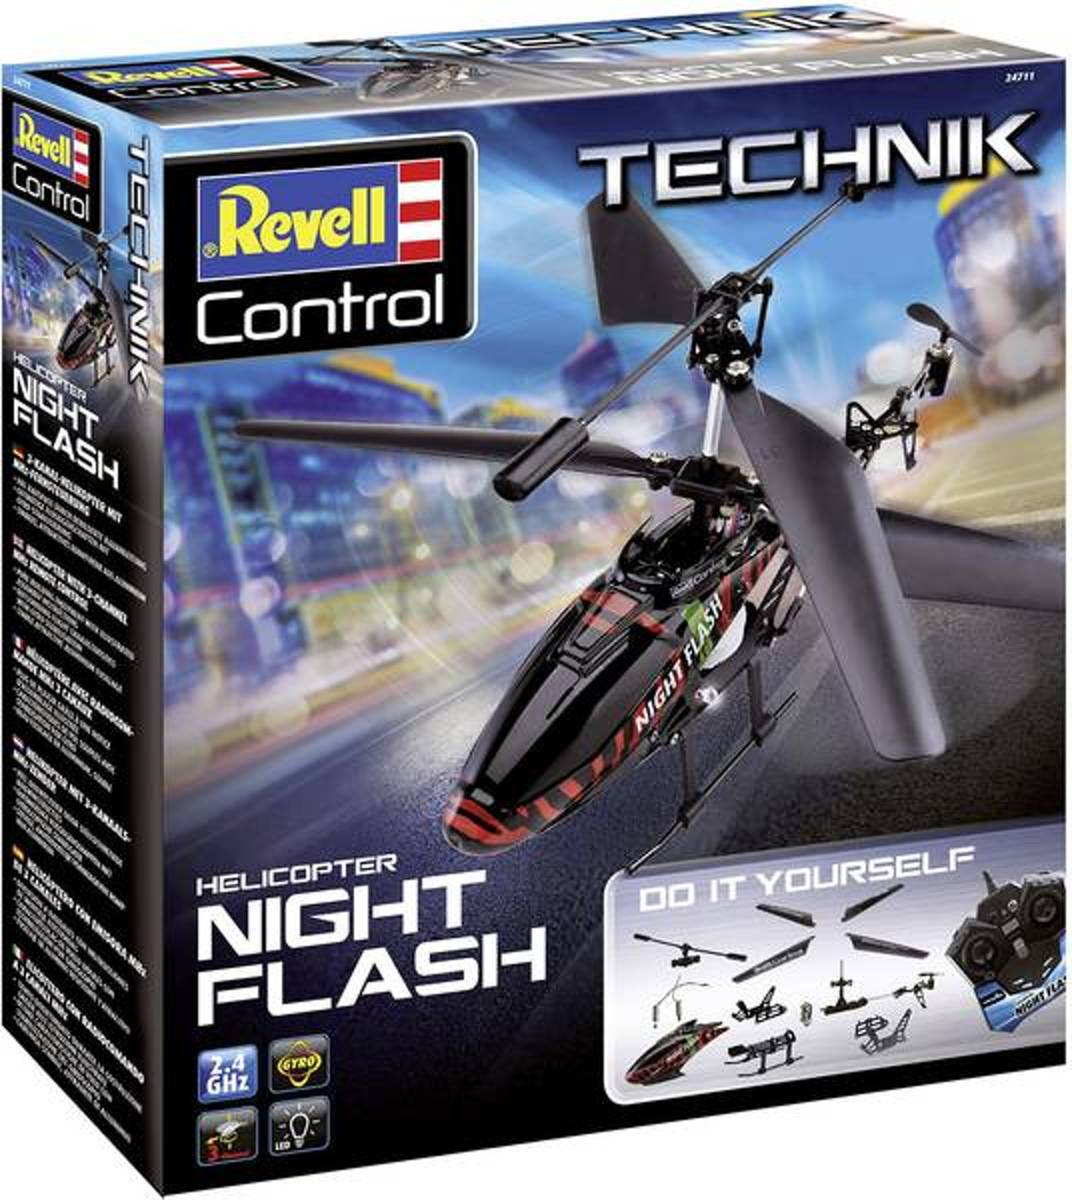 Night flash RC helikopter